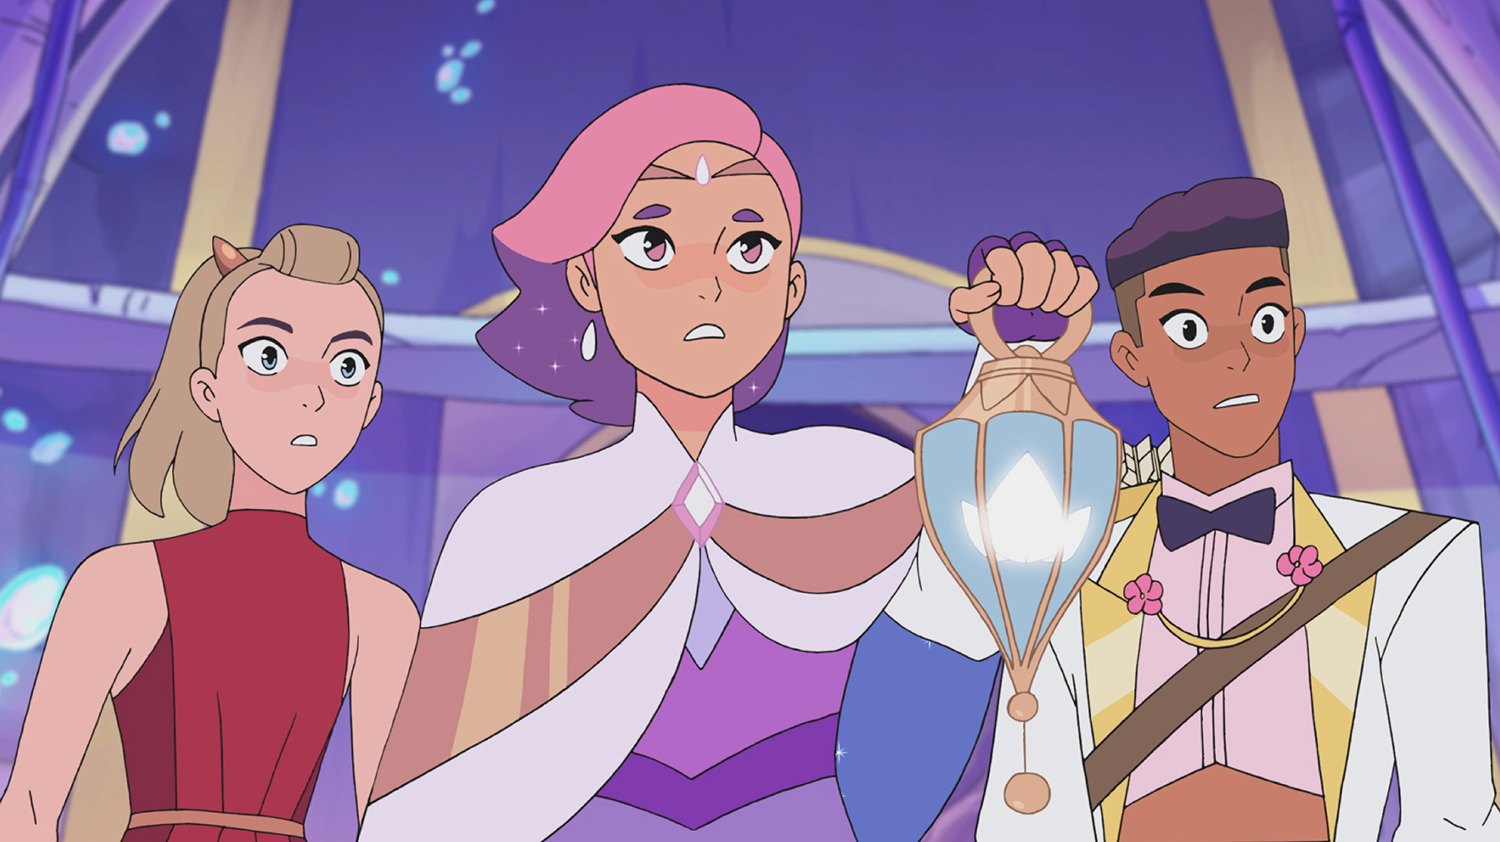 Adora, Glimmer, and Bow during Glimmer's coronation in Season 4, 'She-Ra and the Princesses of Power'